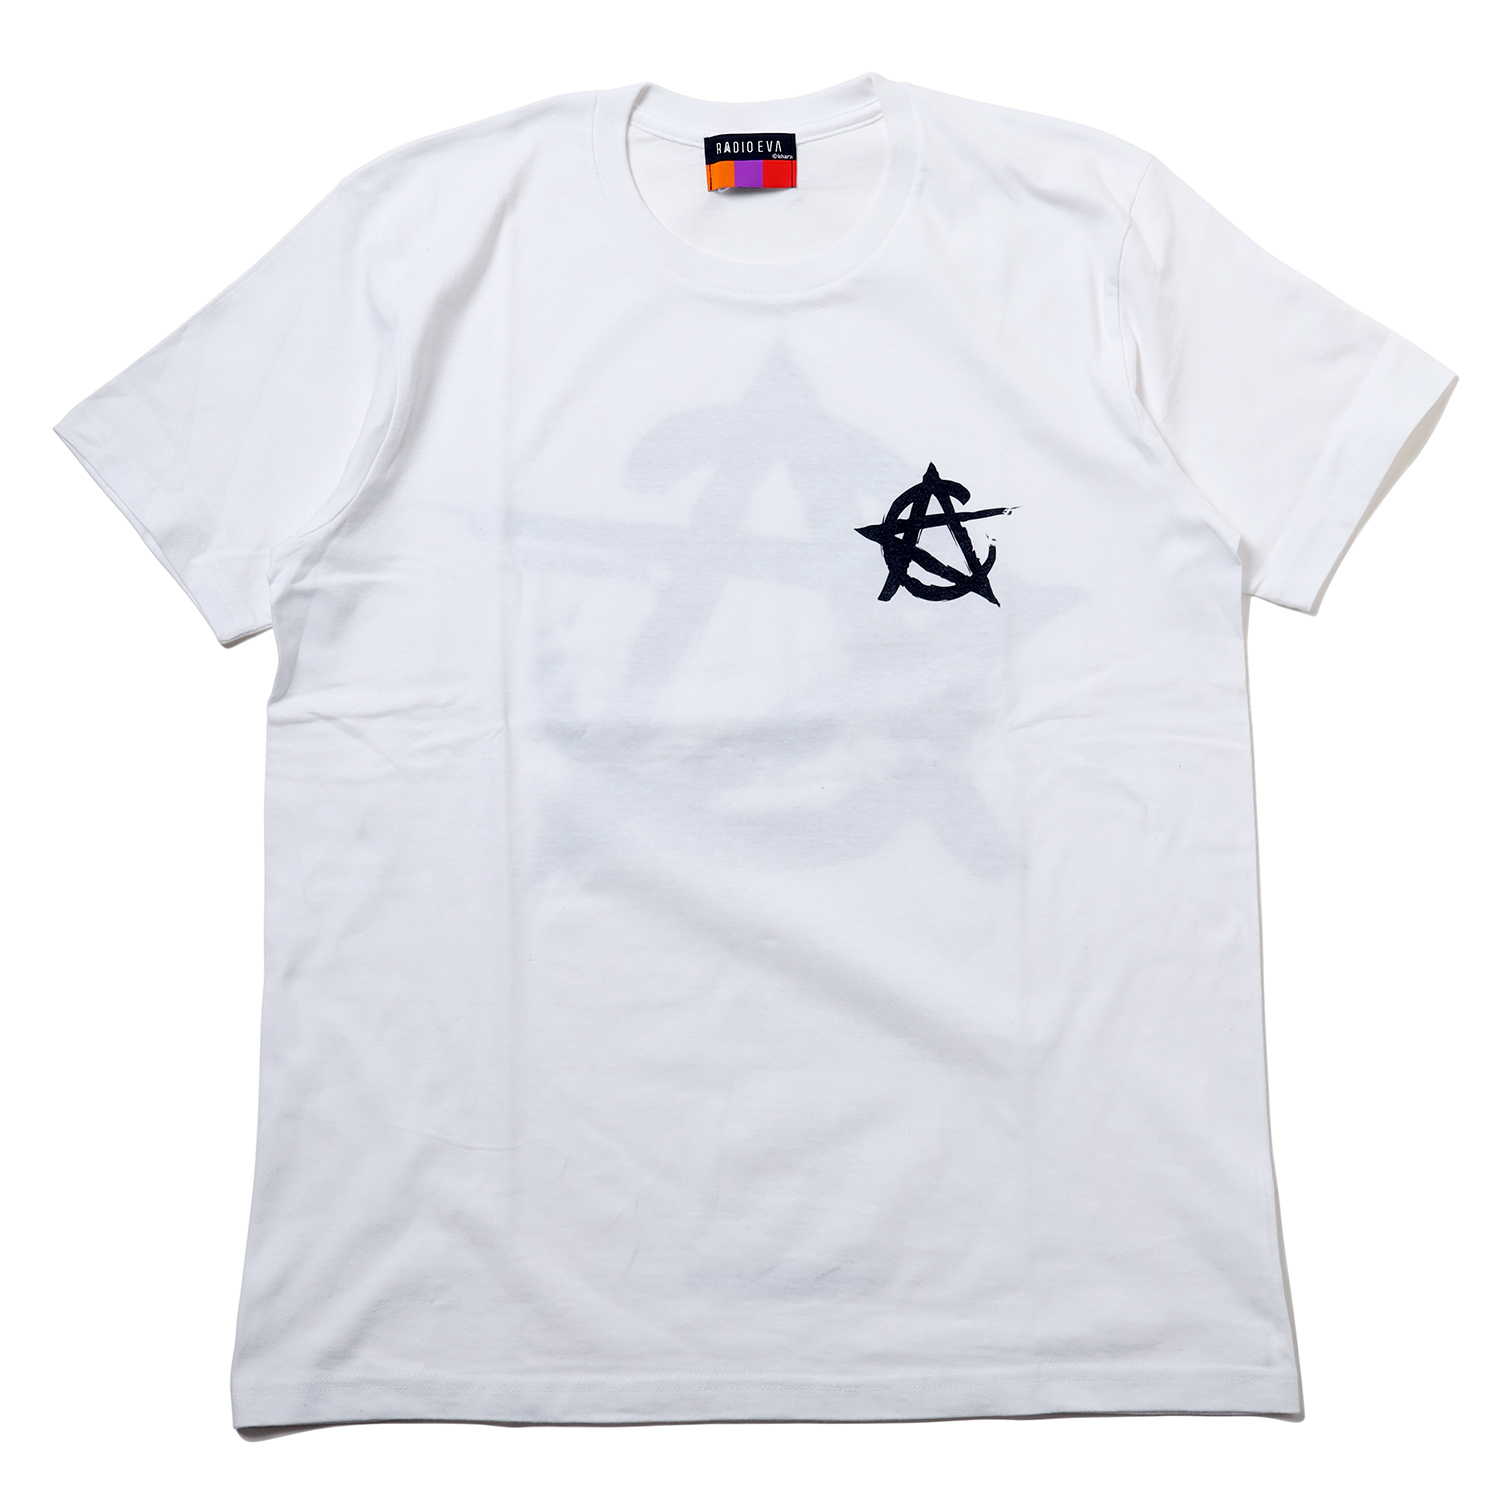 CIRCLE EVA T-Shirt (WHITE)